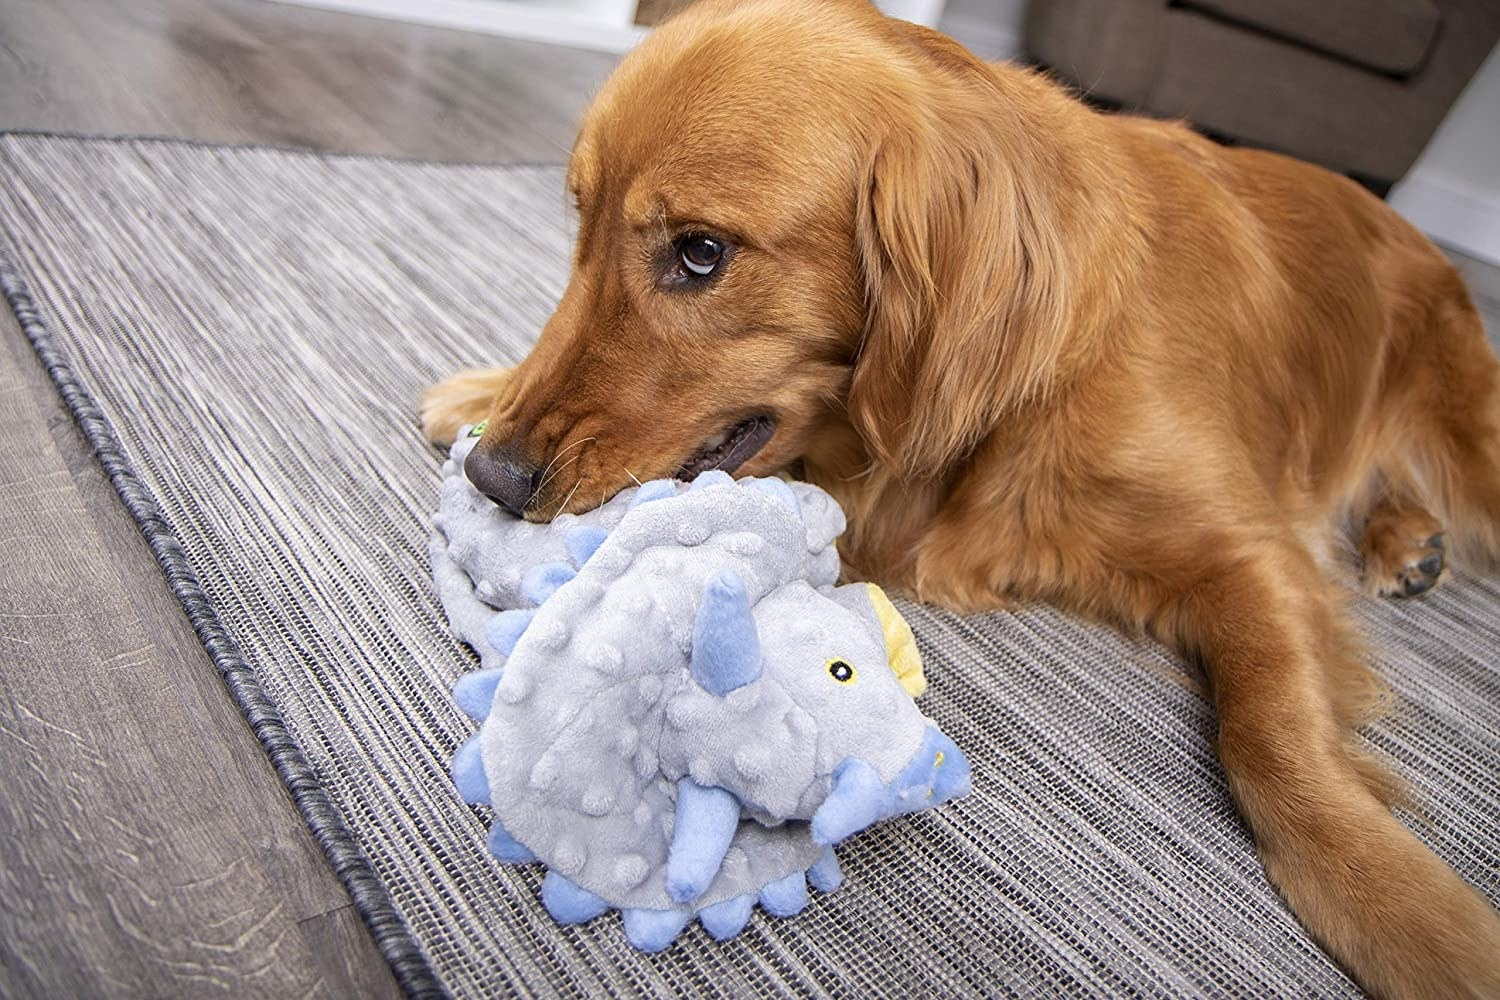 a golden retriever chewing on a dinosaur shaped plush toy